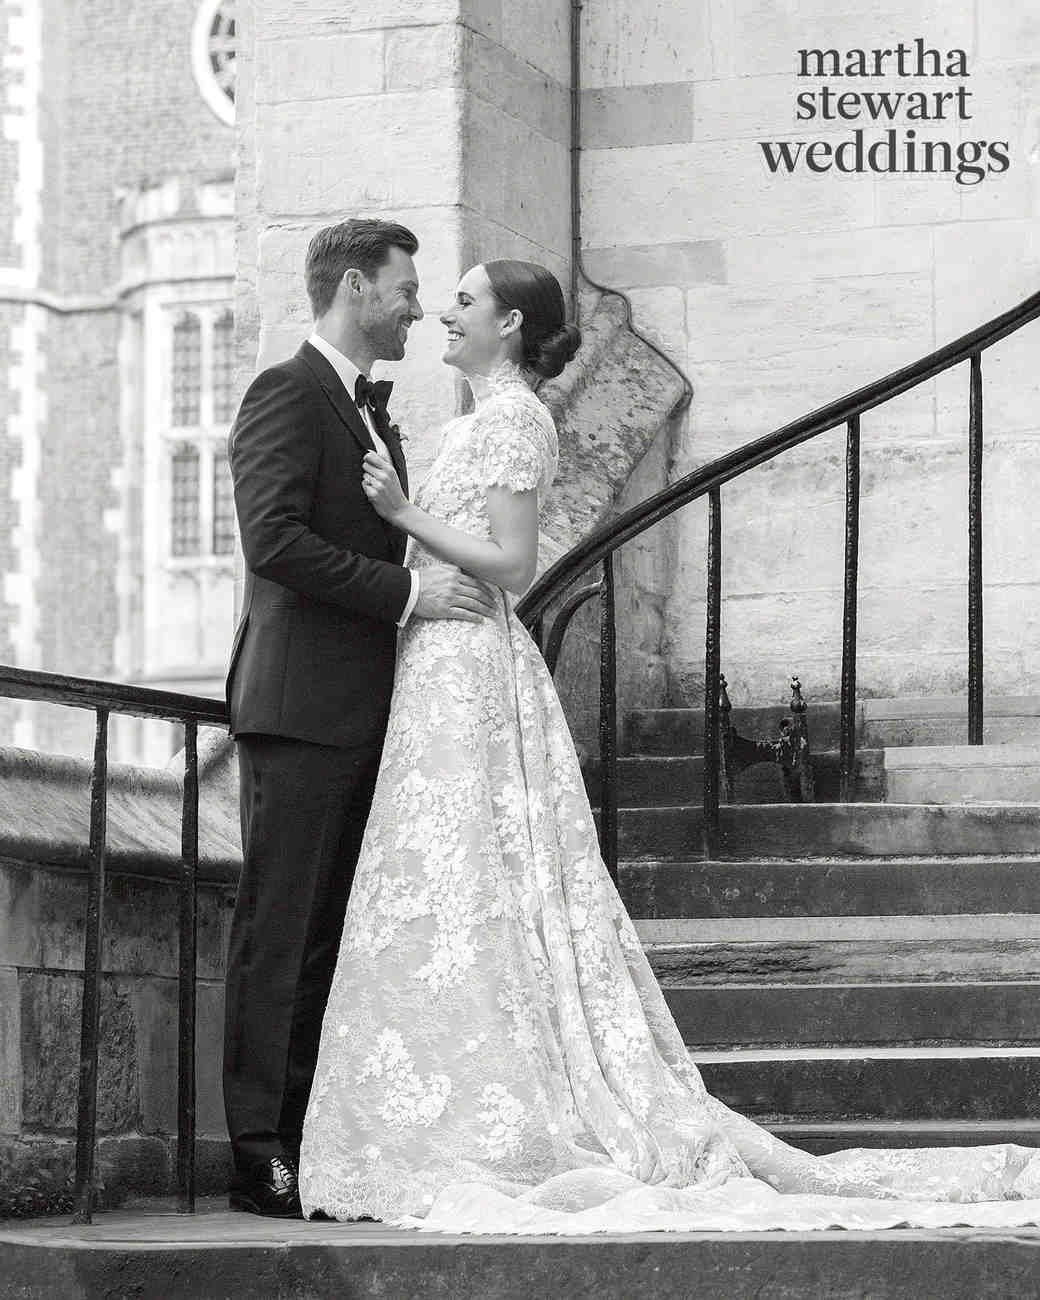 Exclusive Louise Roe And Mackenzie Hunkins Wedding Photos